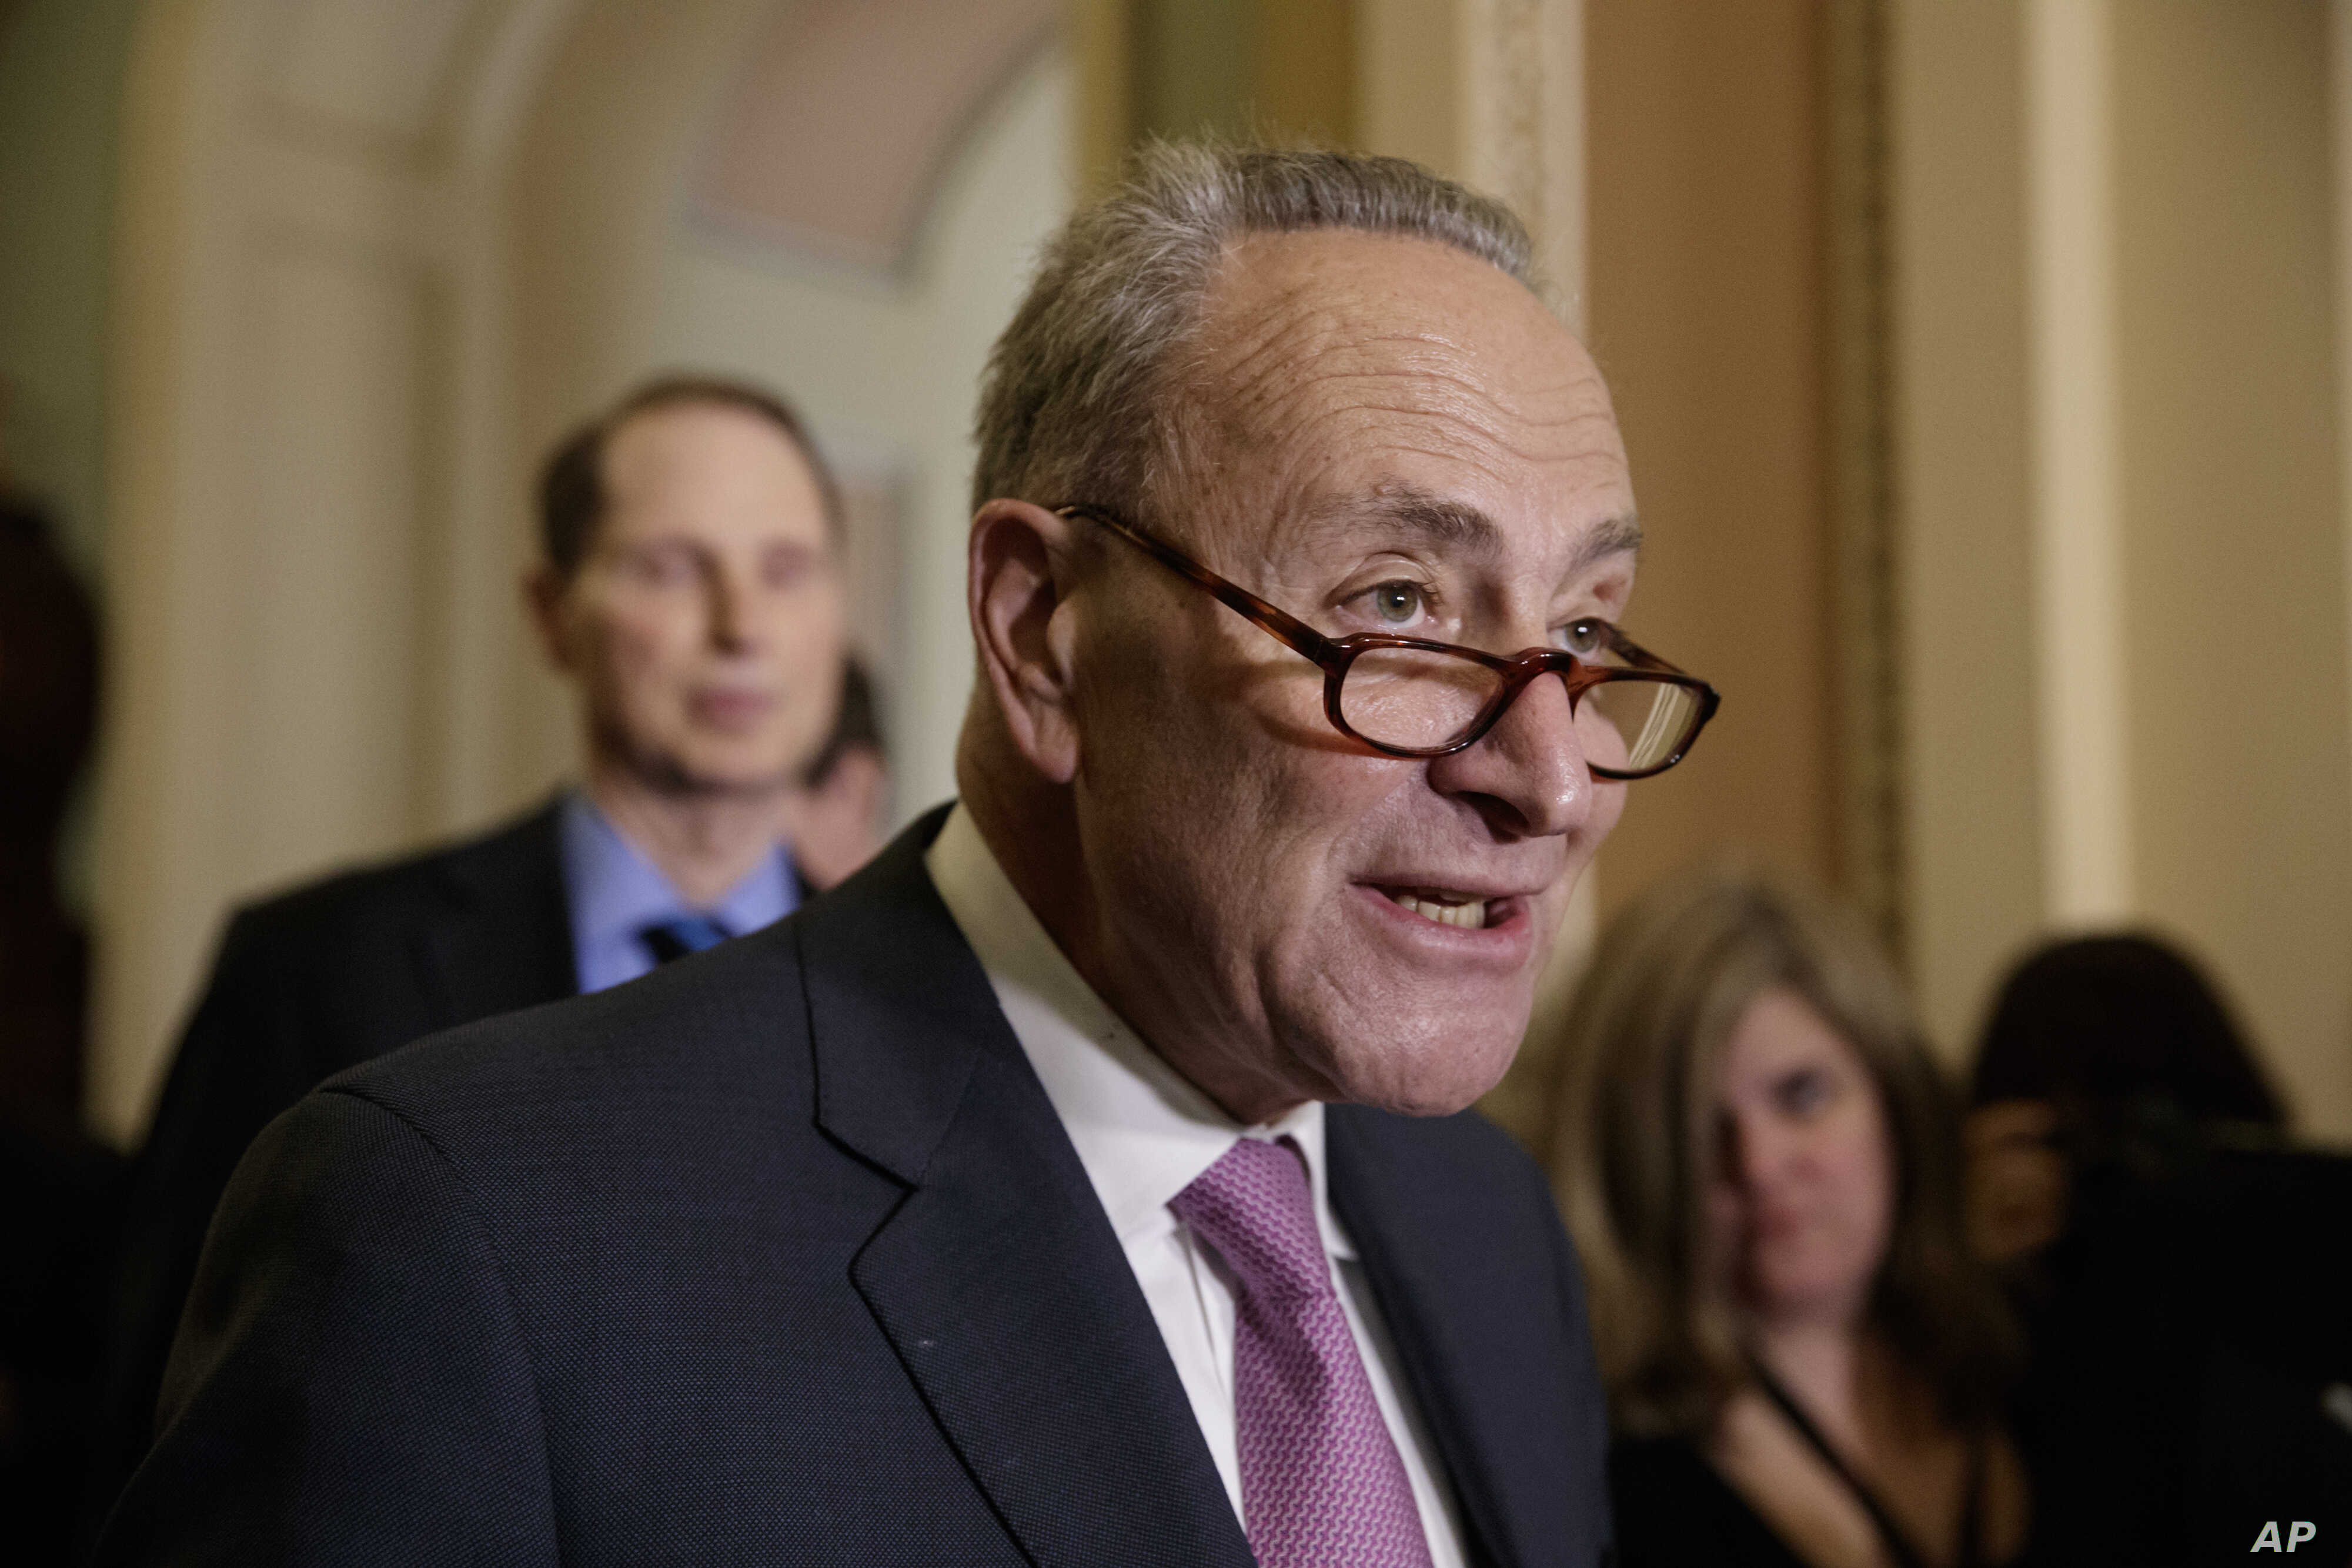 Senate Minority Leader Chuck Schumer of N.Y., criticizes the Republican health care plan designed to replace Obamacare, March 7, 2017, during a news conference on Capitol Hill.